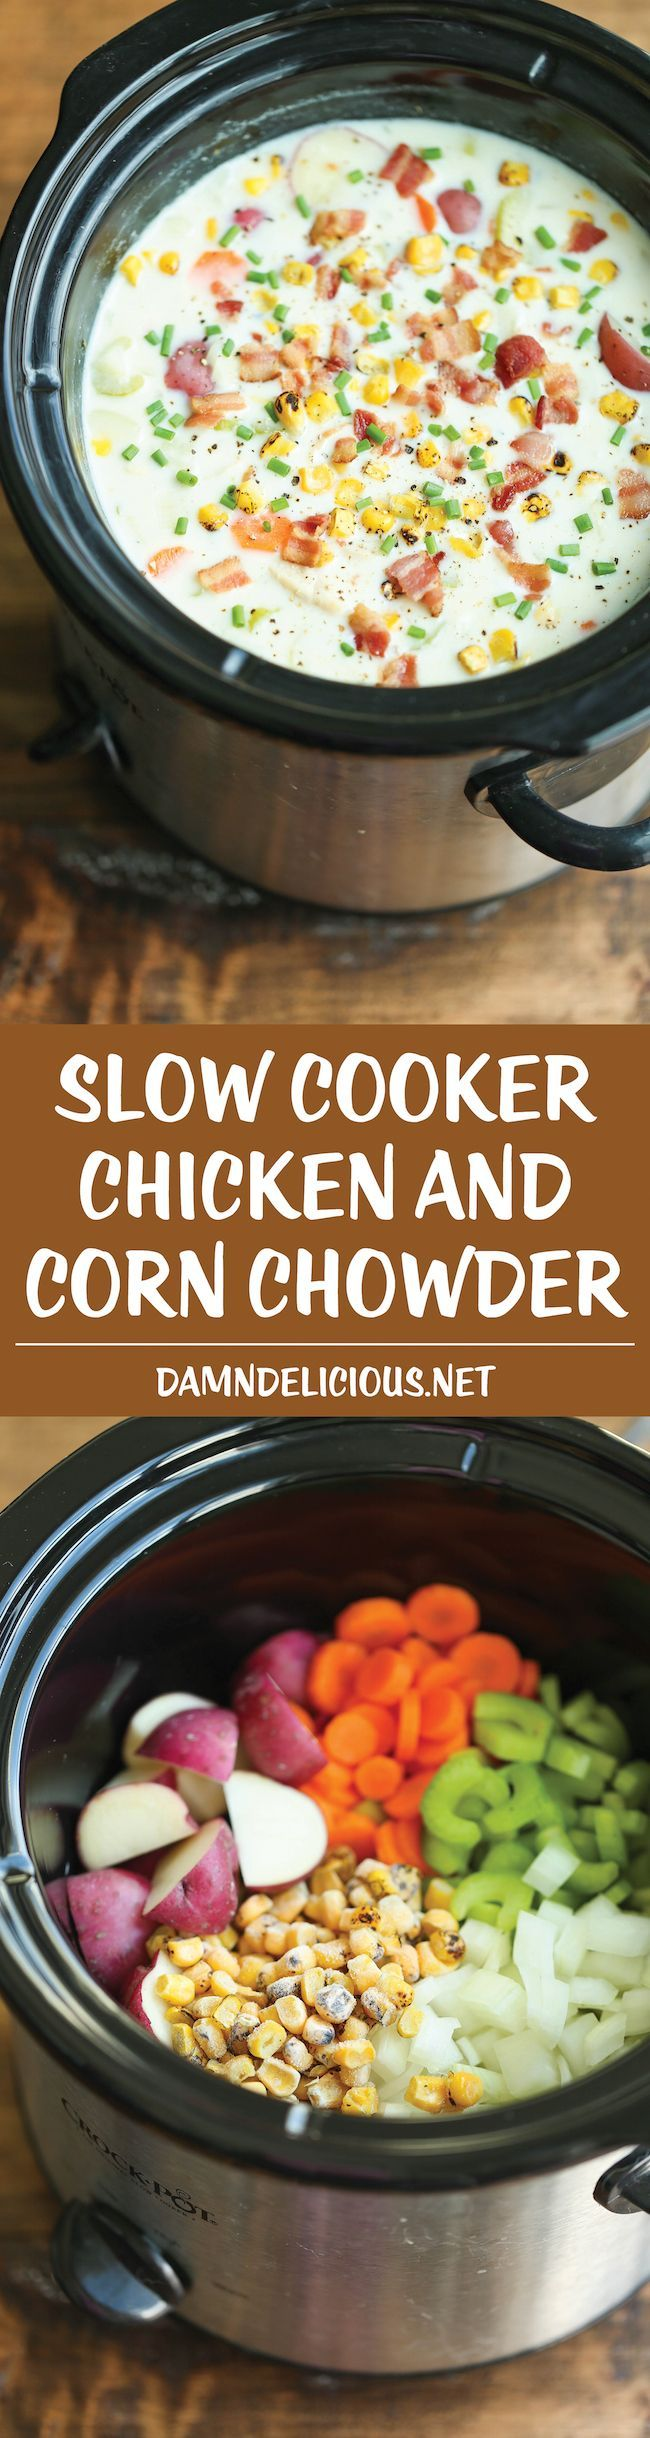 Slow Cooker Chicken and Corn Chowder - Such a hearty, comforting and CREAMY soup, made right in the crockpot. Let it do all the work for you! EASY!